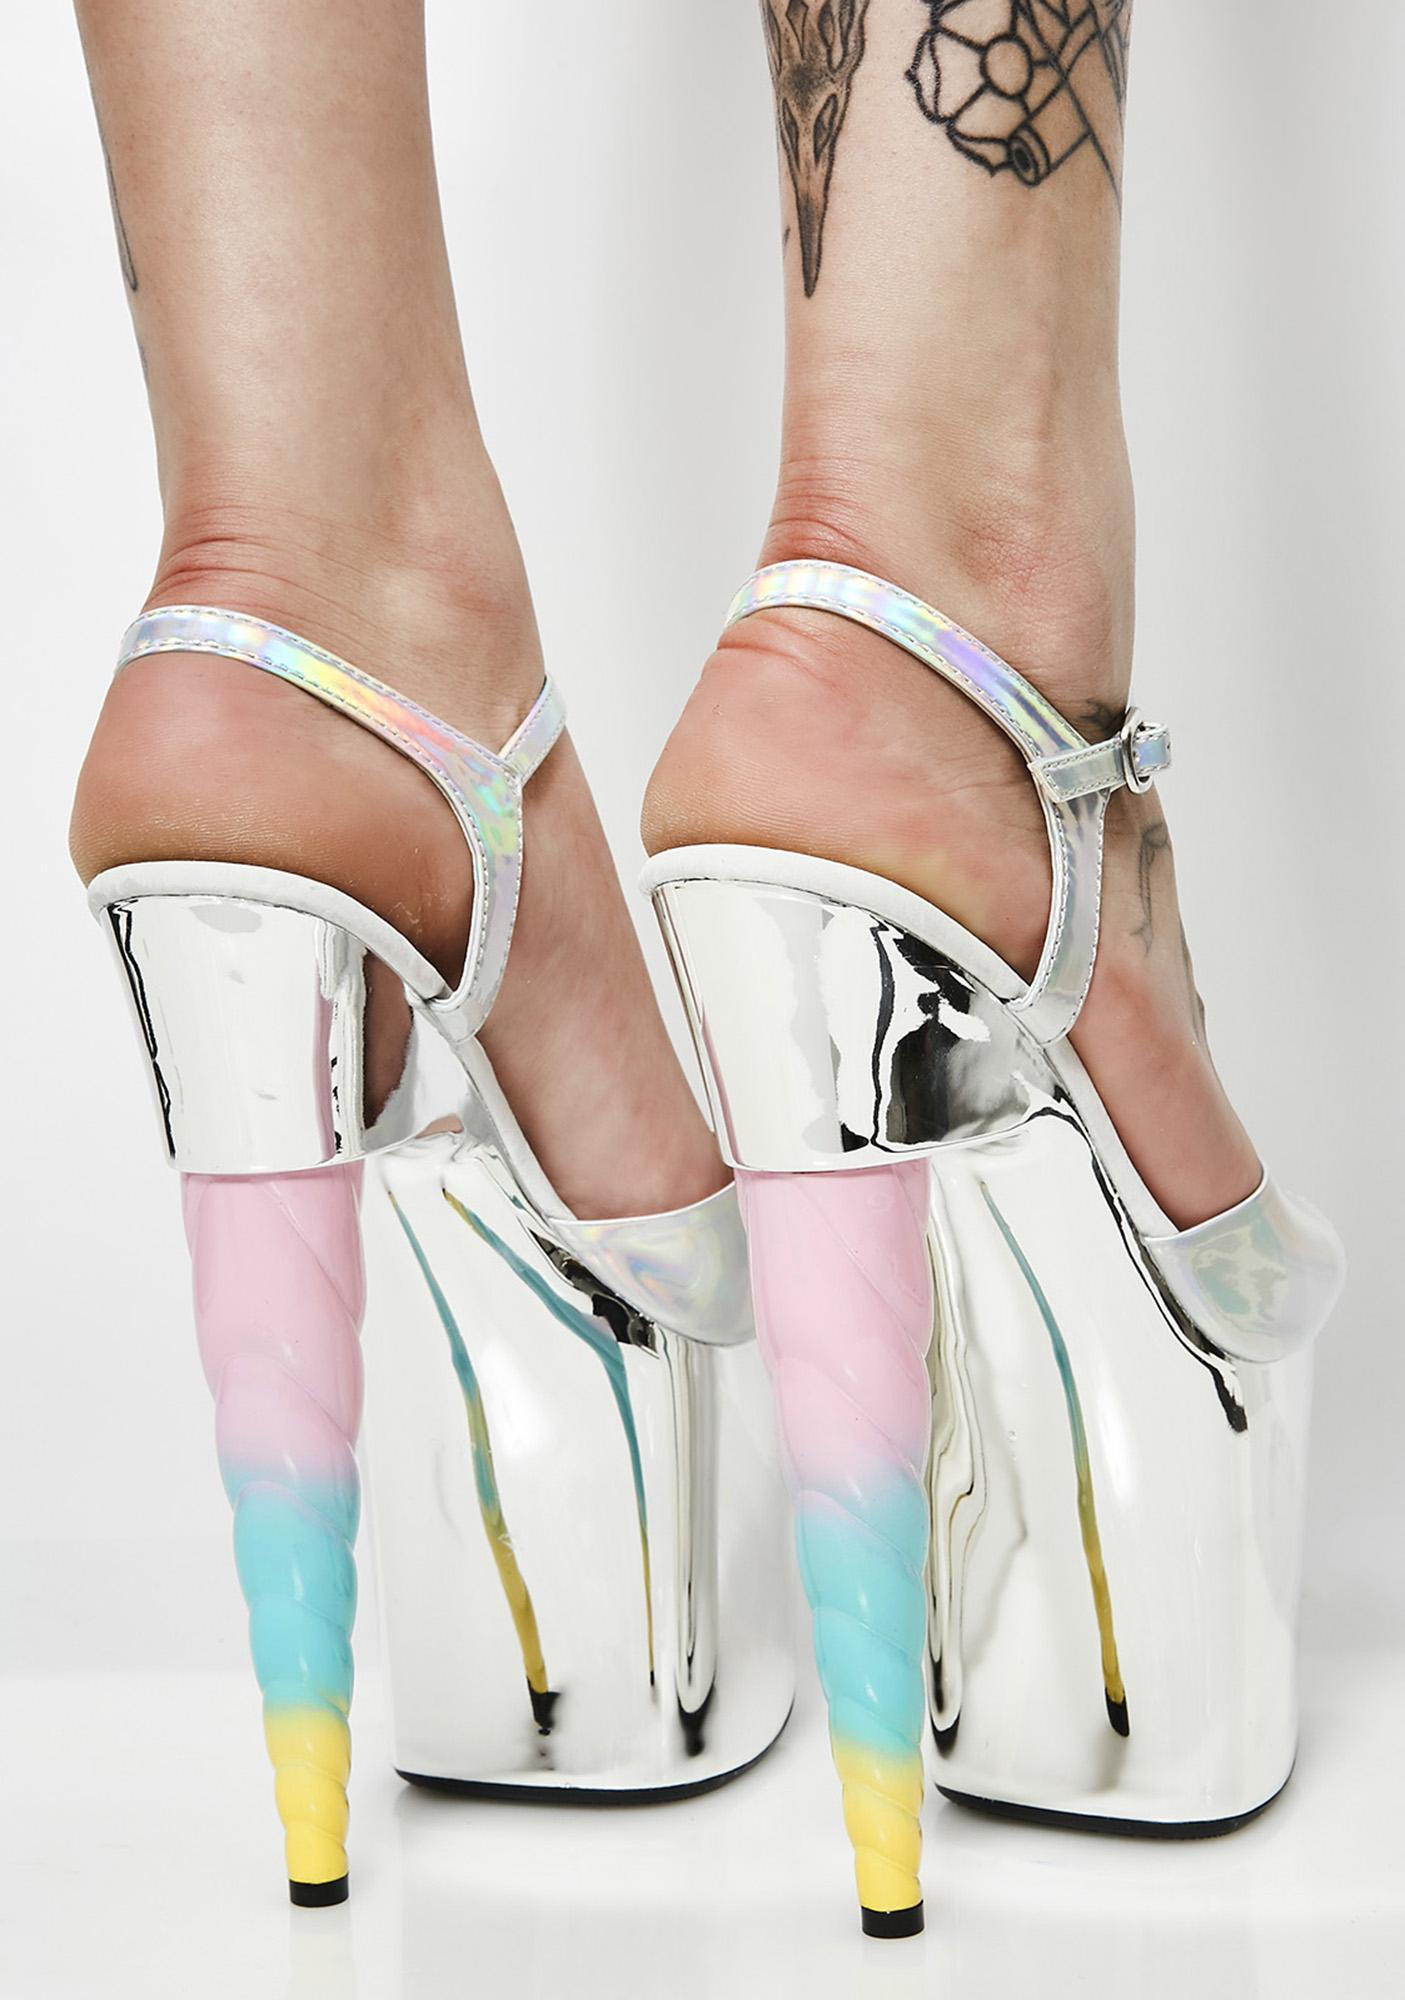 Mythical Magic Unicorn Heels